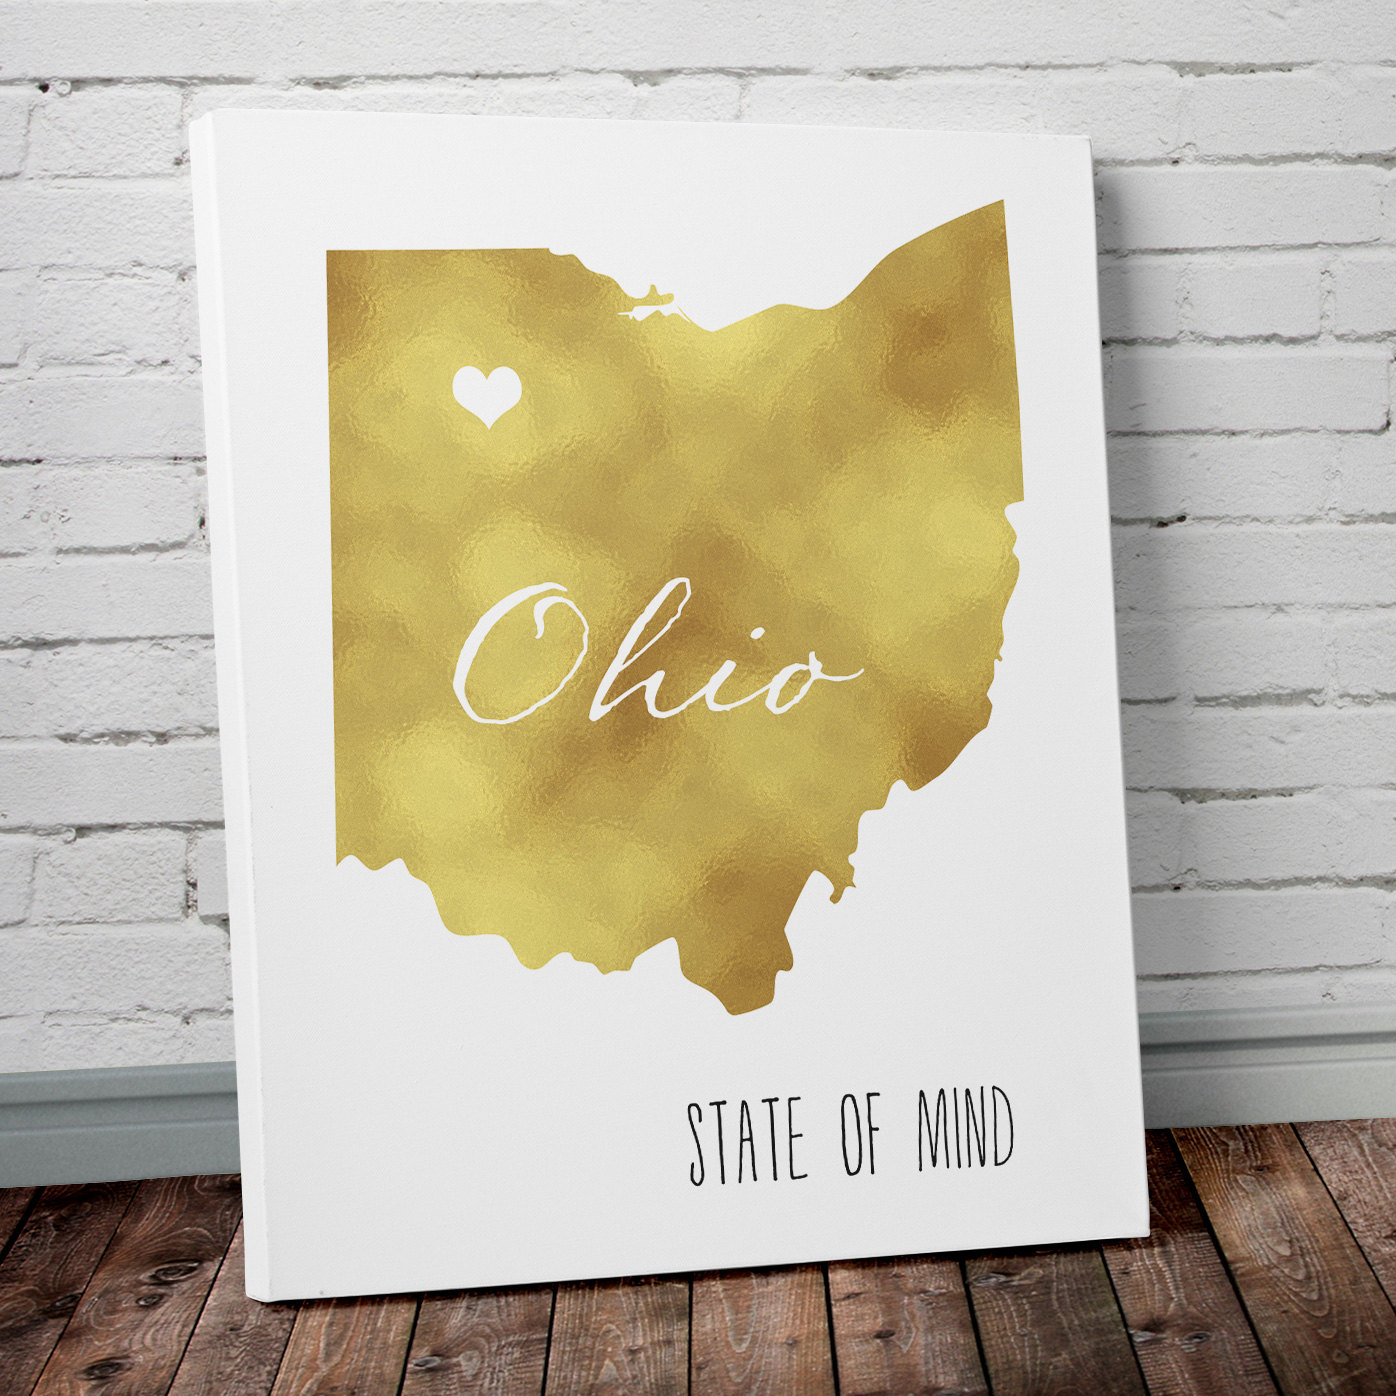 Contemporary Ohio State Wall Art Image Collection - All About ...